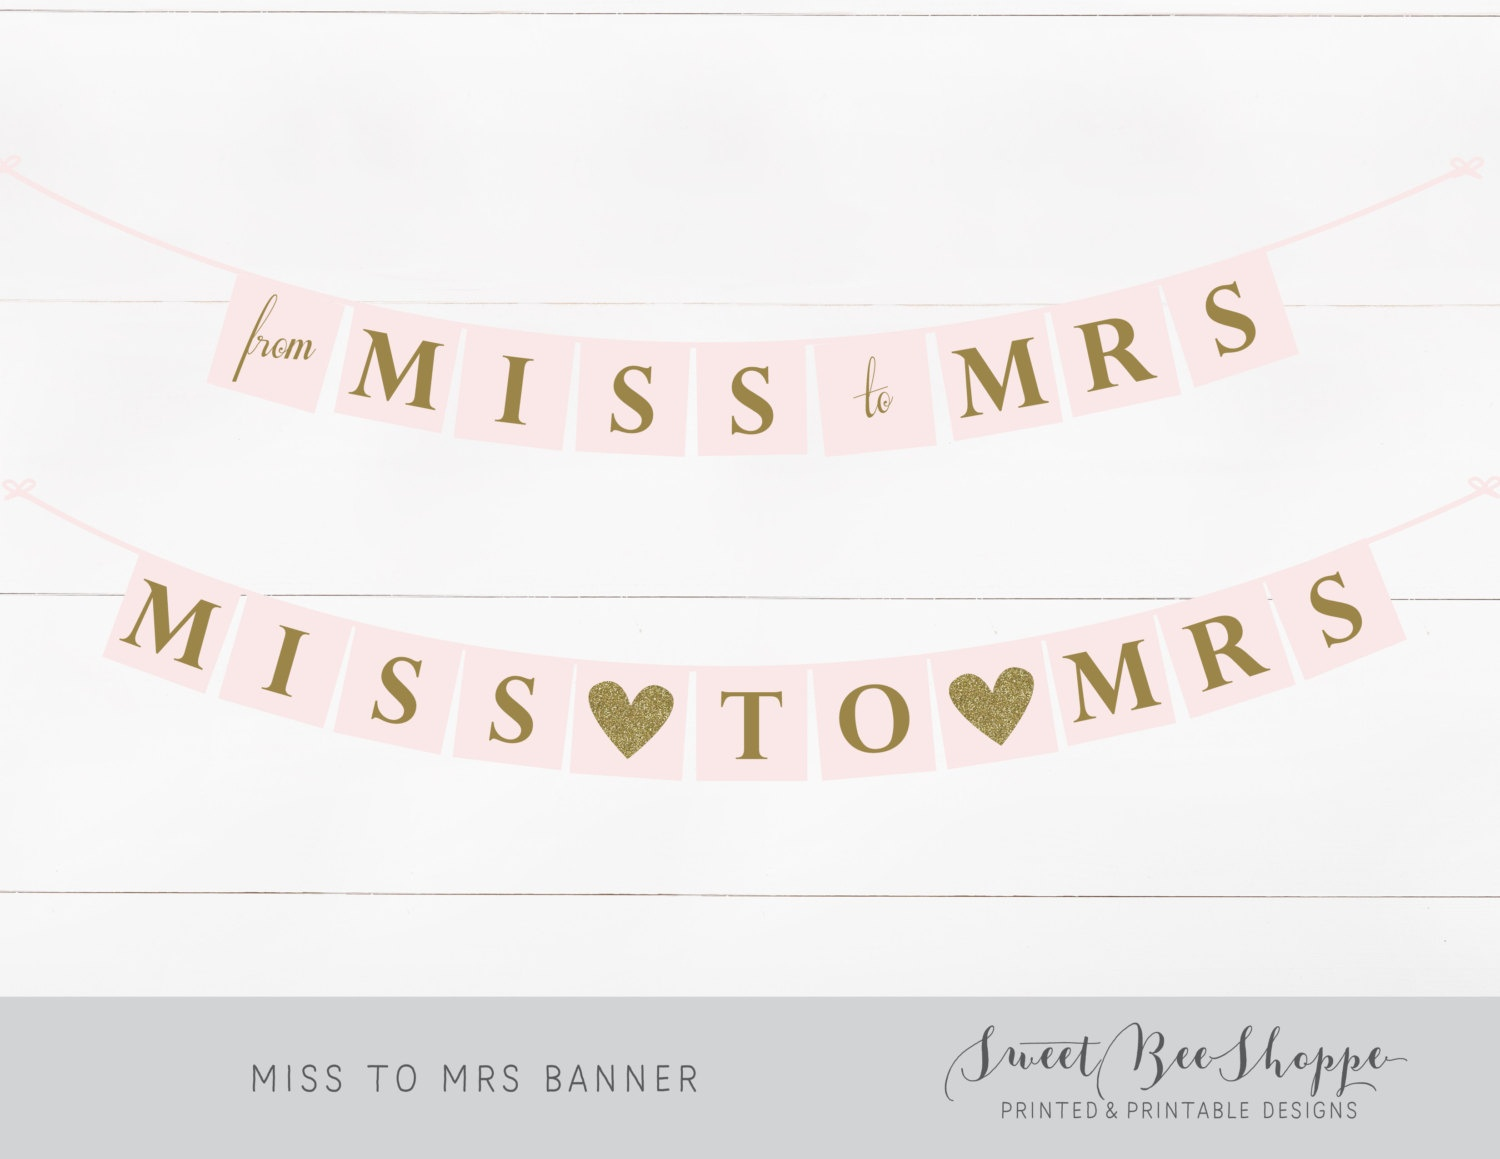 Miss To Mrs Banner Instant Download Printable Party Banner | Etsy - Free Printable Miss To Mrs Banner